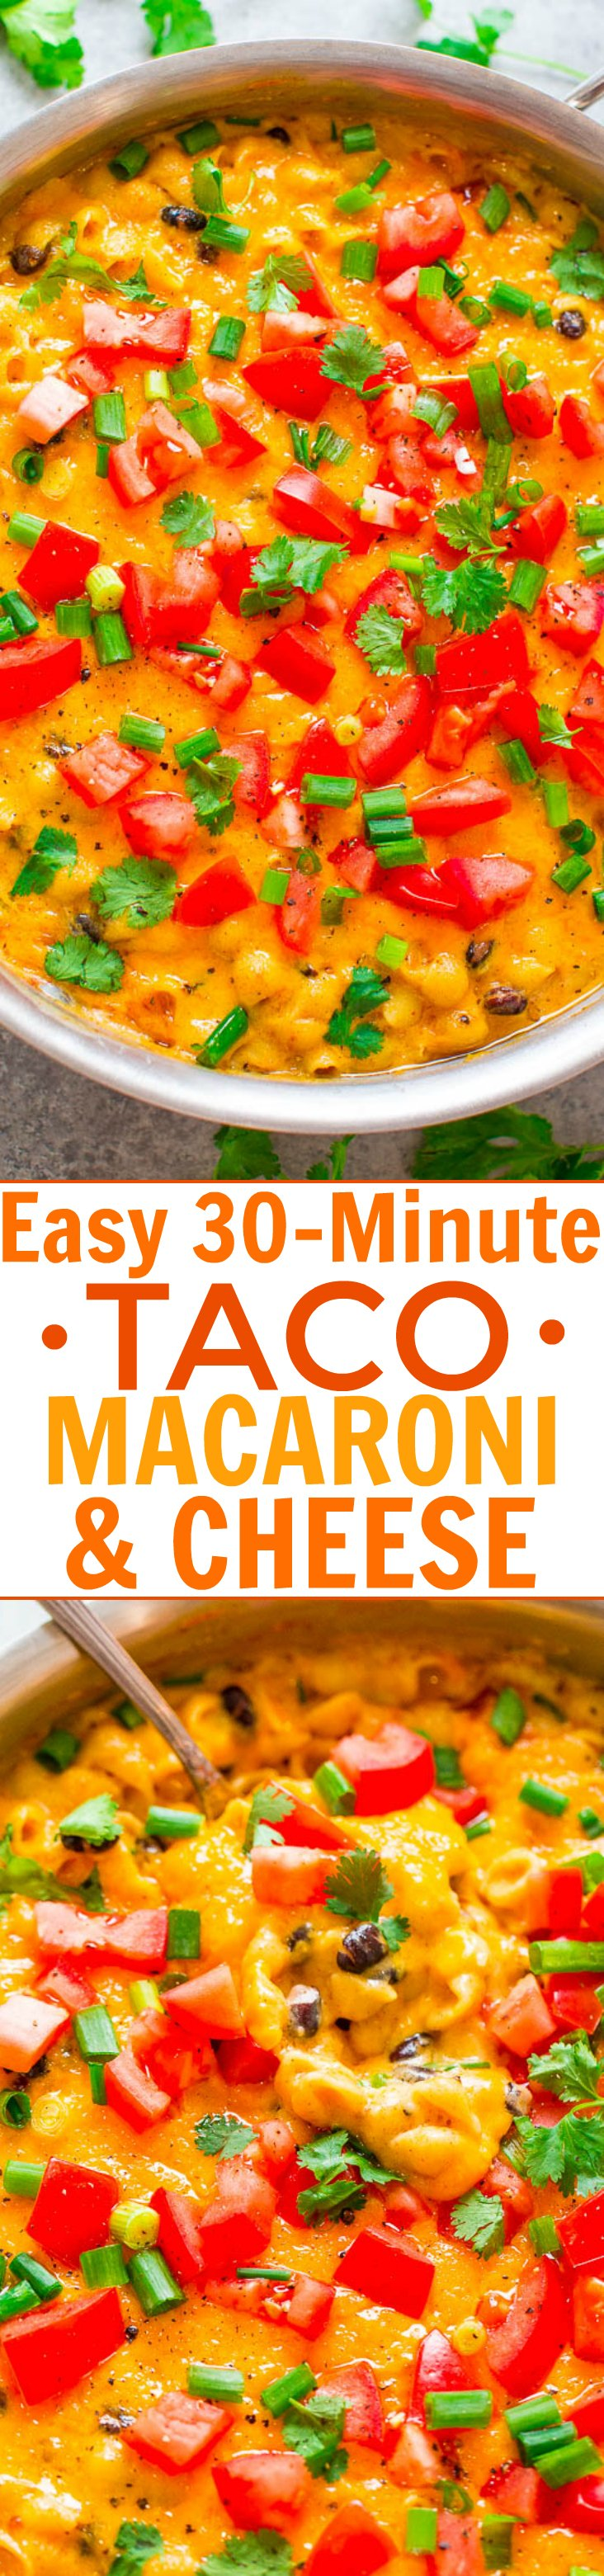 Easy 30-Minute Taco Macaroni and Cheese - Super creamy, ultra cheesy, flavored with taco seasoning, black beans, green onions, tomatoes, and cilantro!! EASY comfort food with a Mexican flair that's a family FAVORITE!!